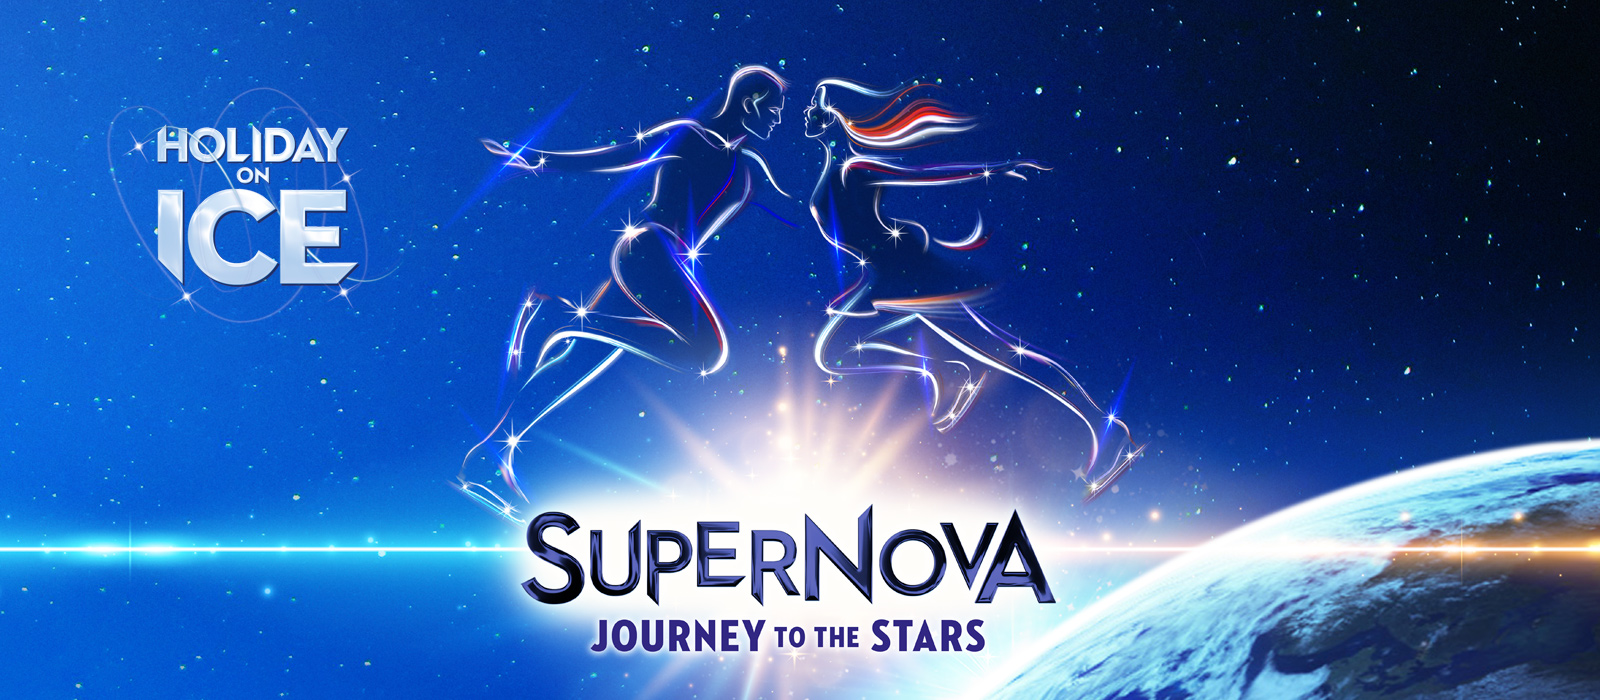 SUPERNOVA- Holiday On Ice